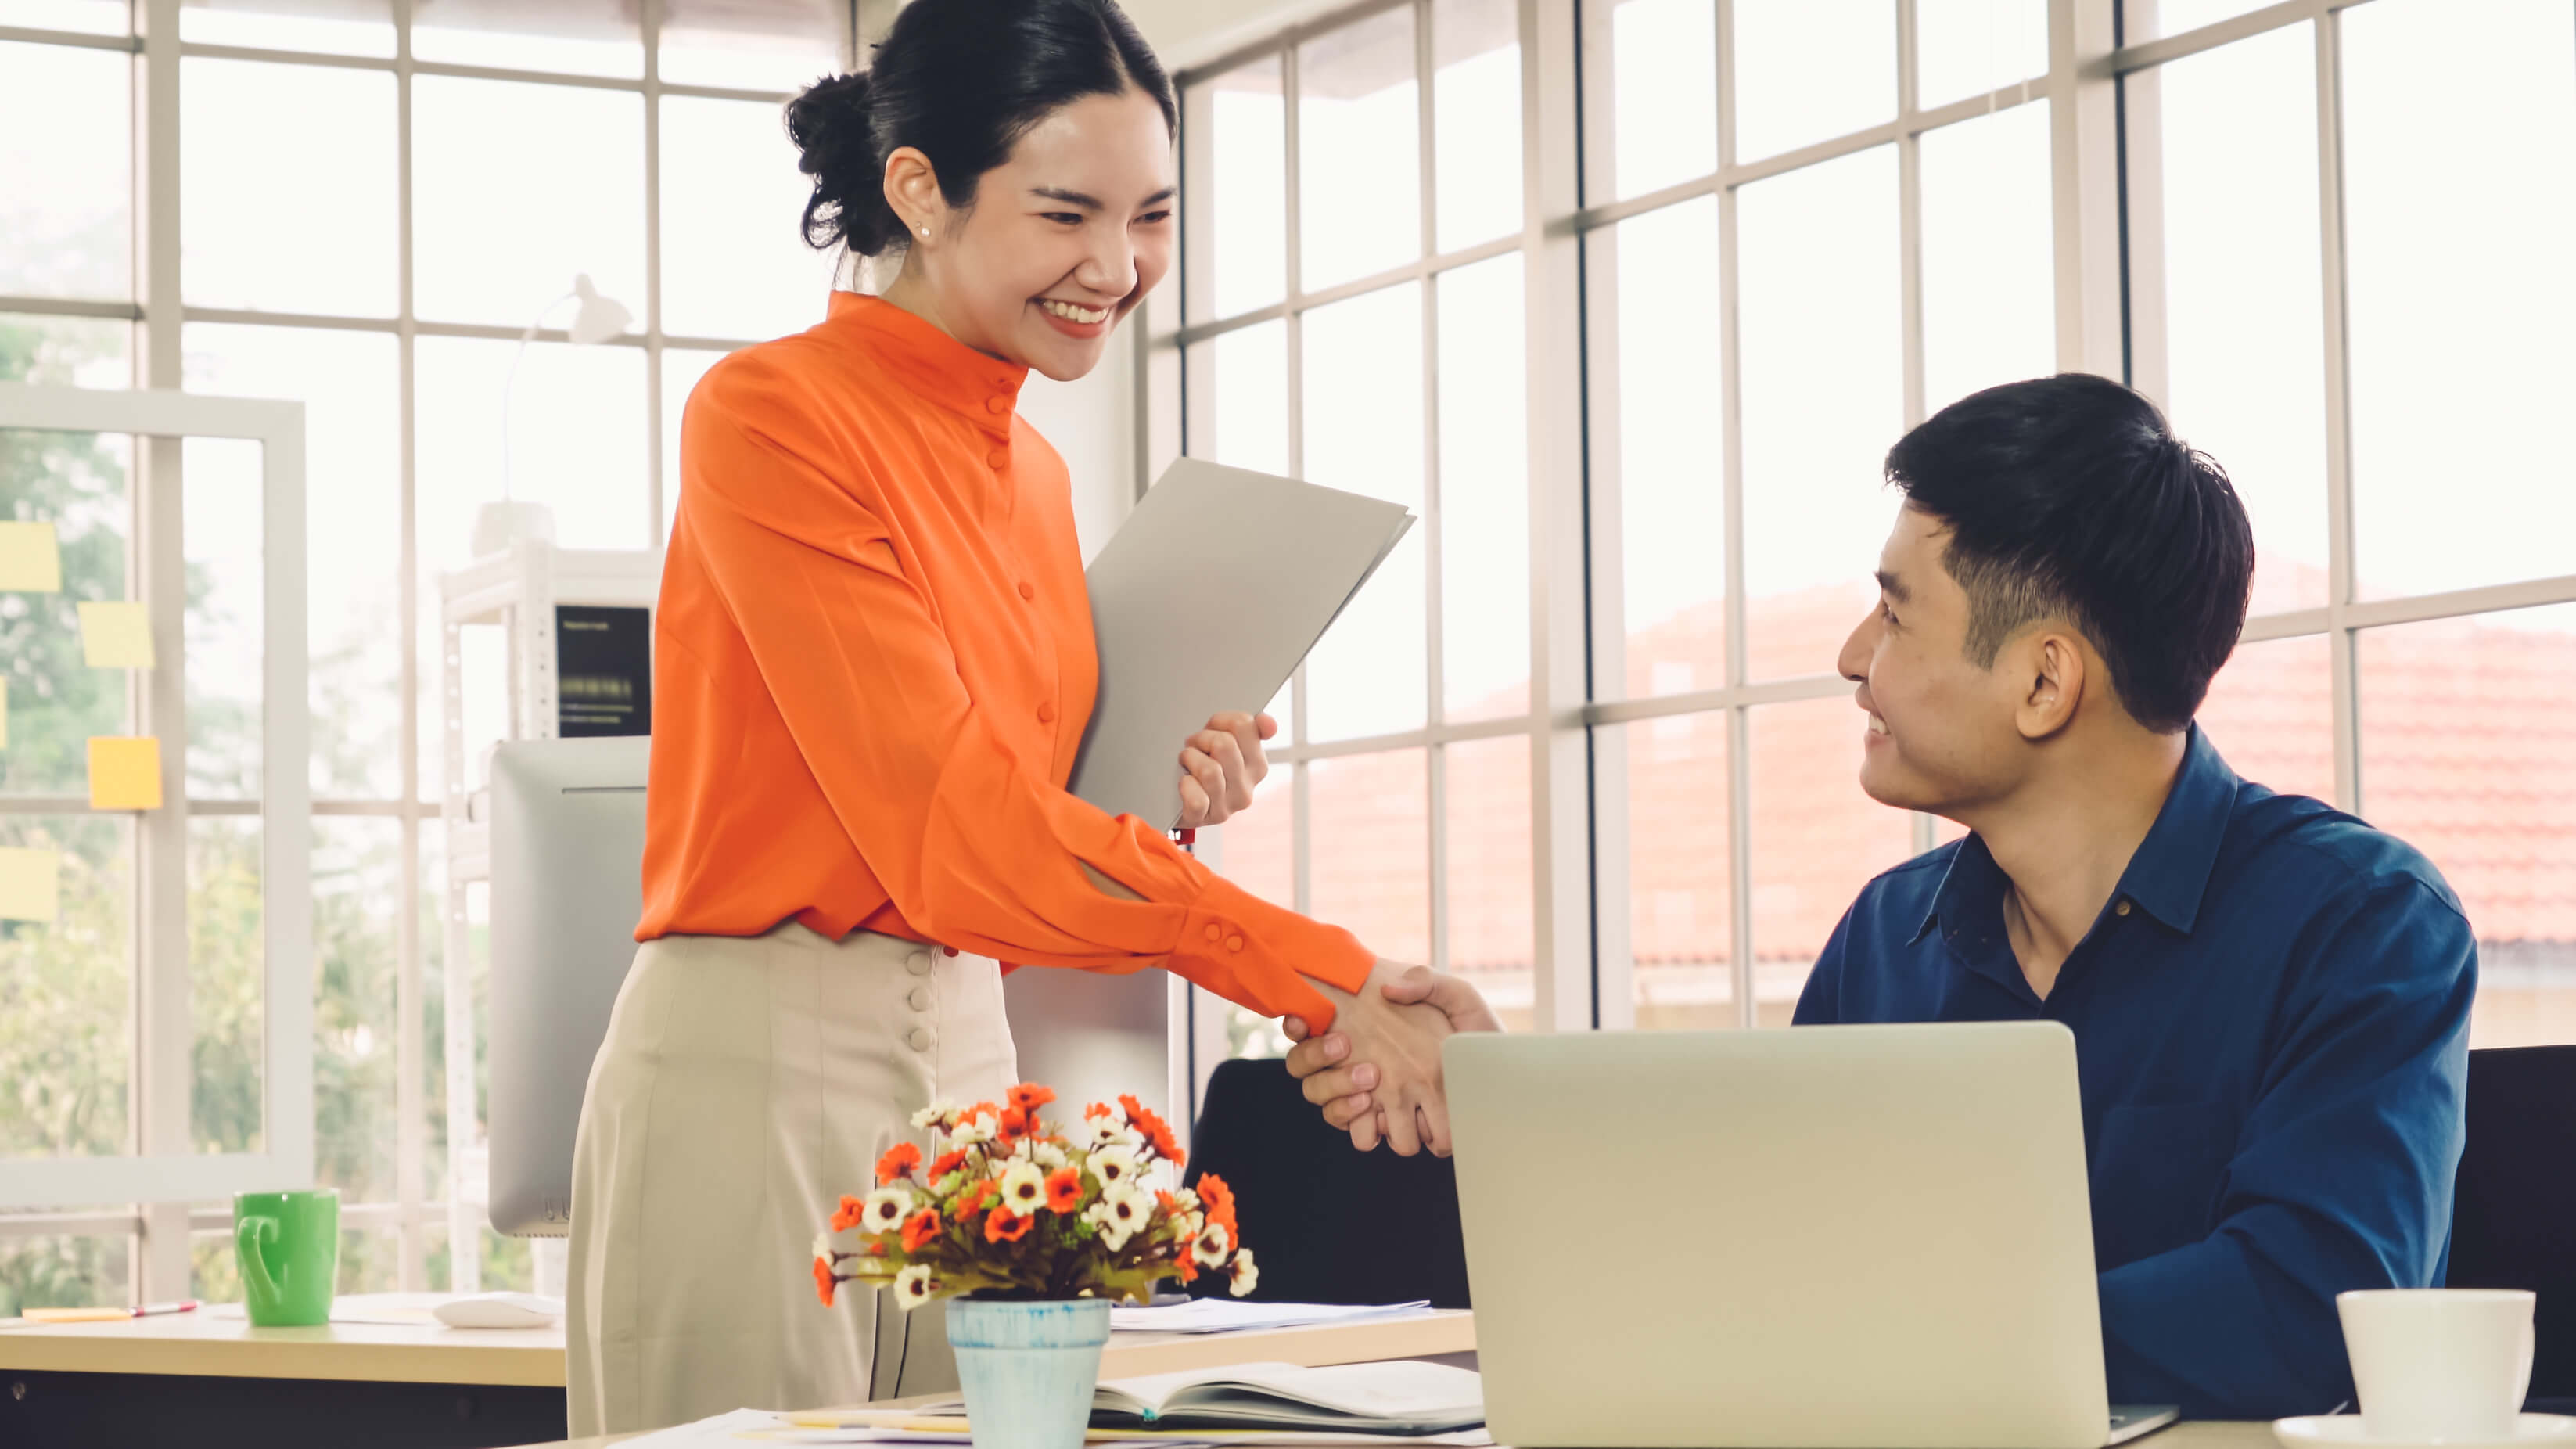 smiling woman shaking man's hand next to desk with laptop